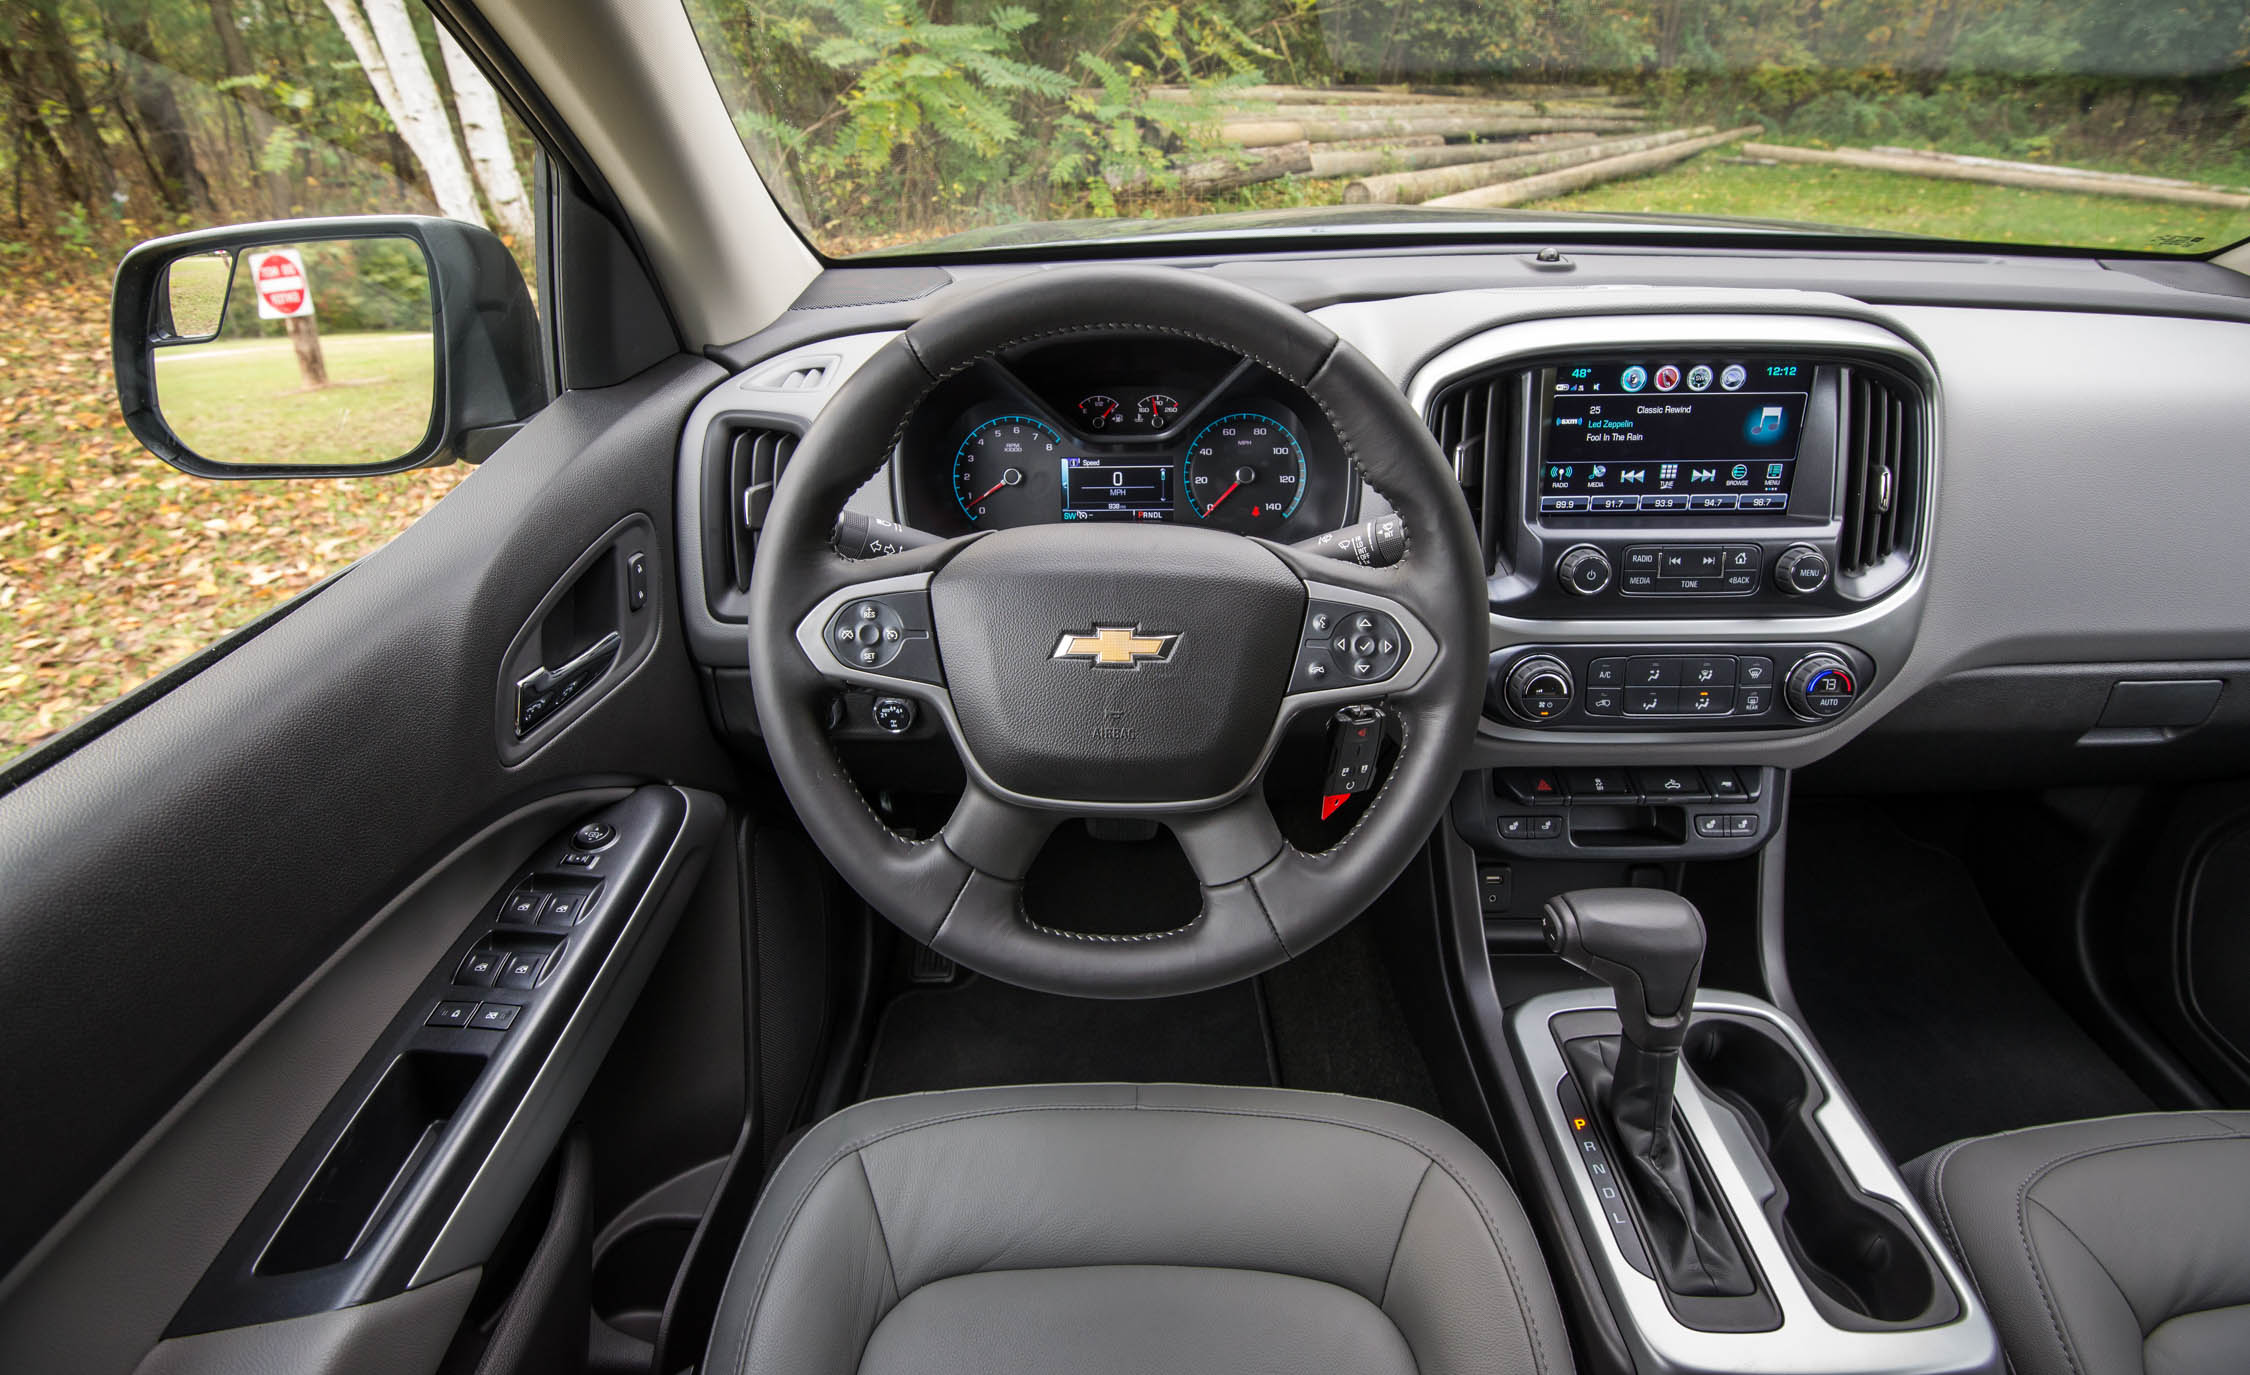 2017 Chevrolet Colorado LT Interior Steering And Dash (View 9 of 41)